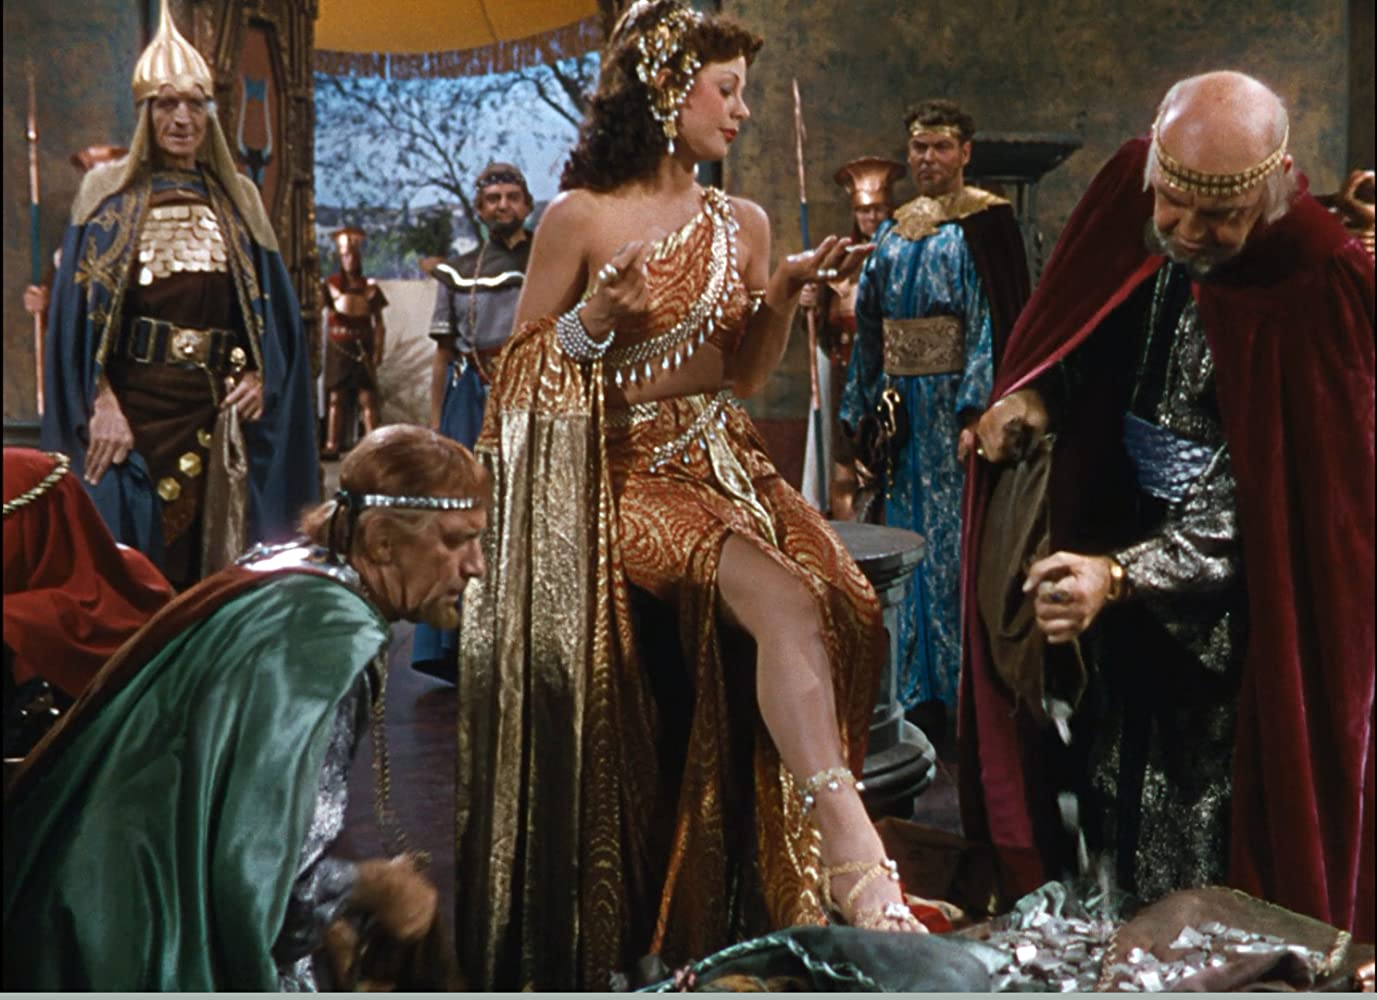 A March Through Film History: Samson and Delilah (1949)